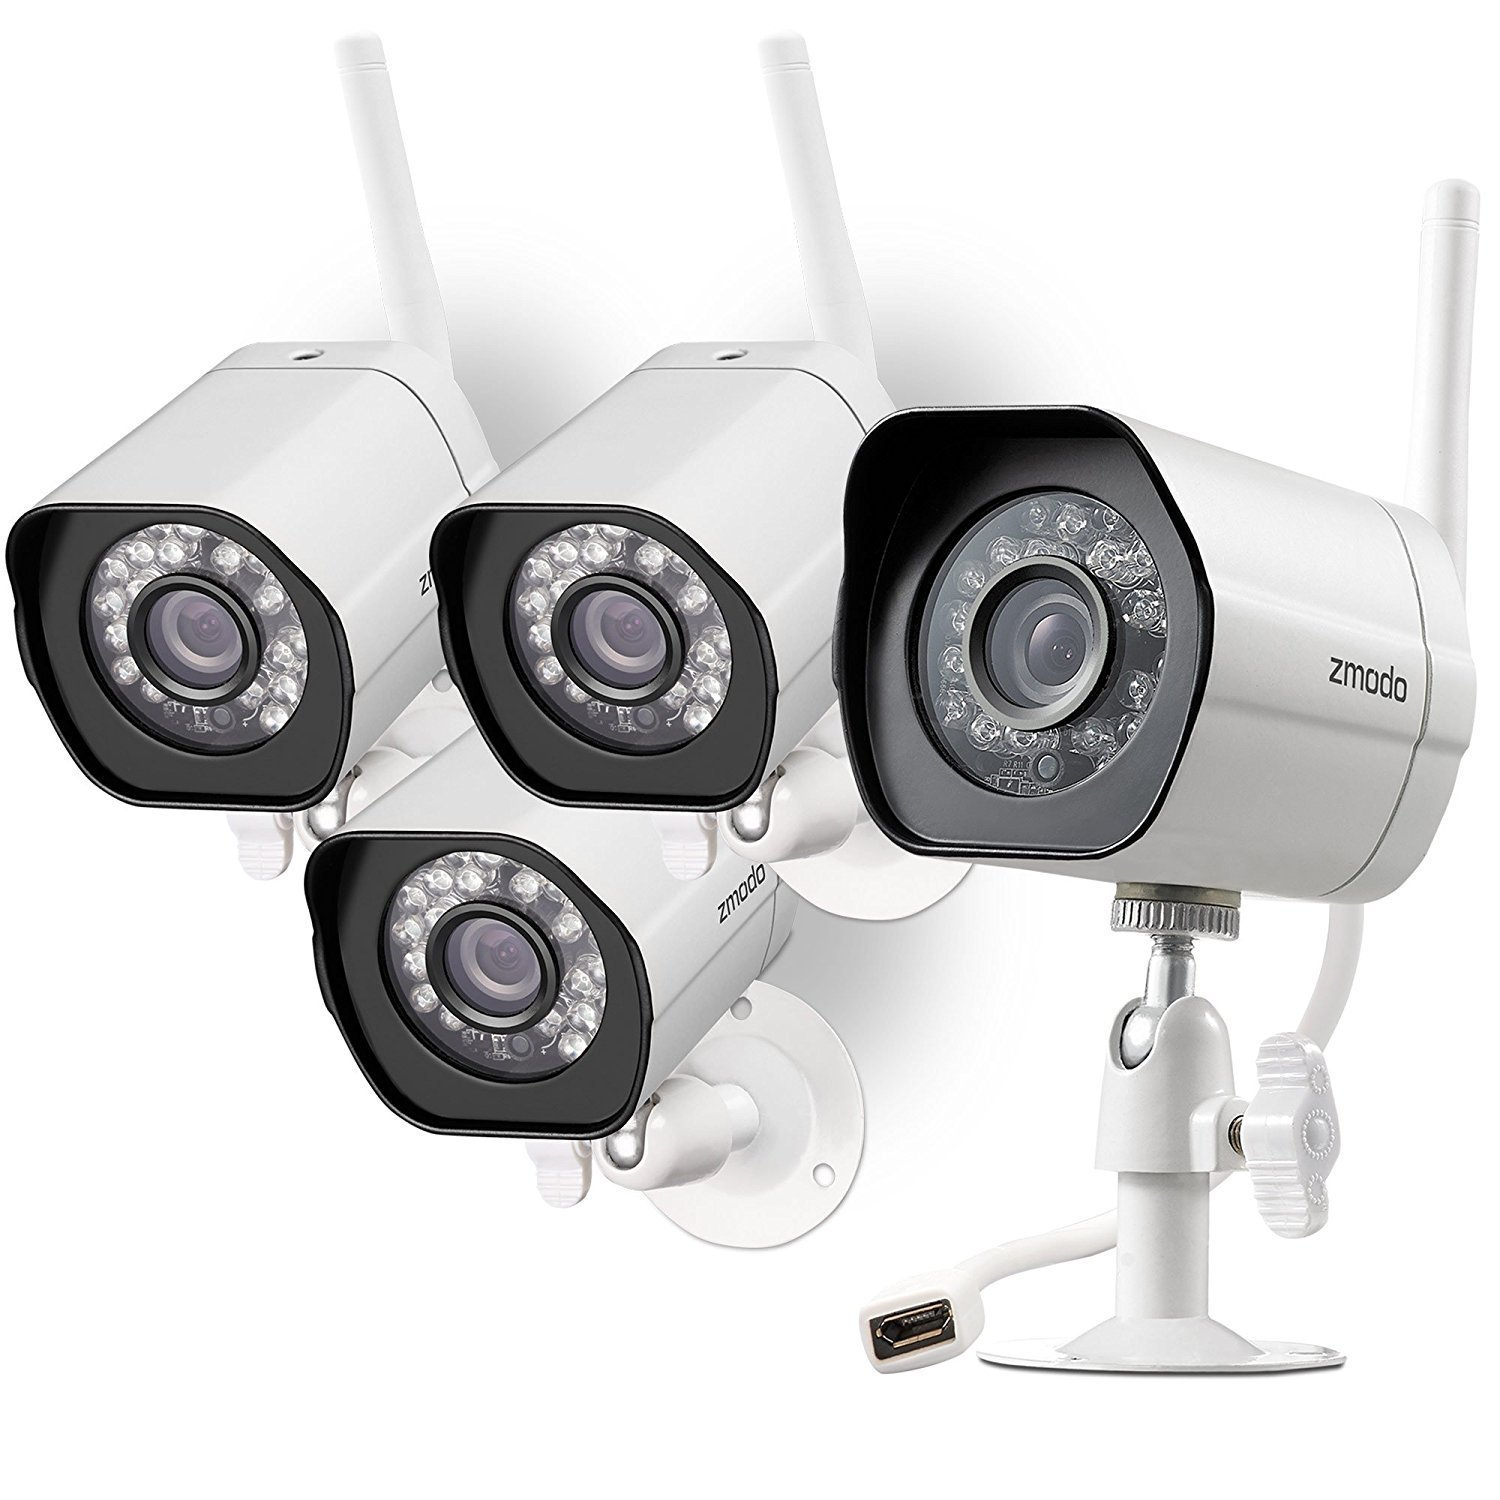 Zmodo Wireless Security セキュリティ Camera カメラ System (4 pack) Smart HD Outdoor アウトドア WiFi IP Cameras with Night Vision 夜間視力 (並行輸入品) B07BV2FKTP  One Color One Size